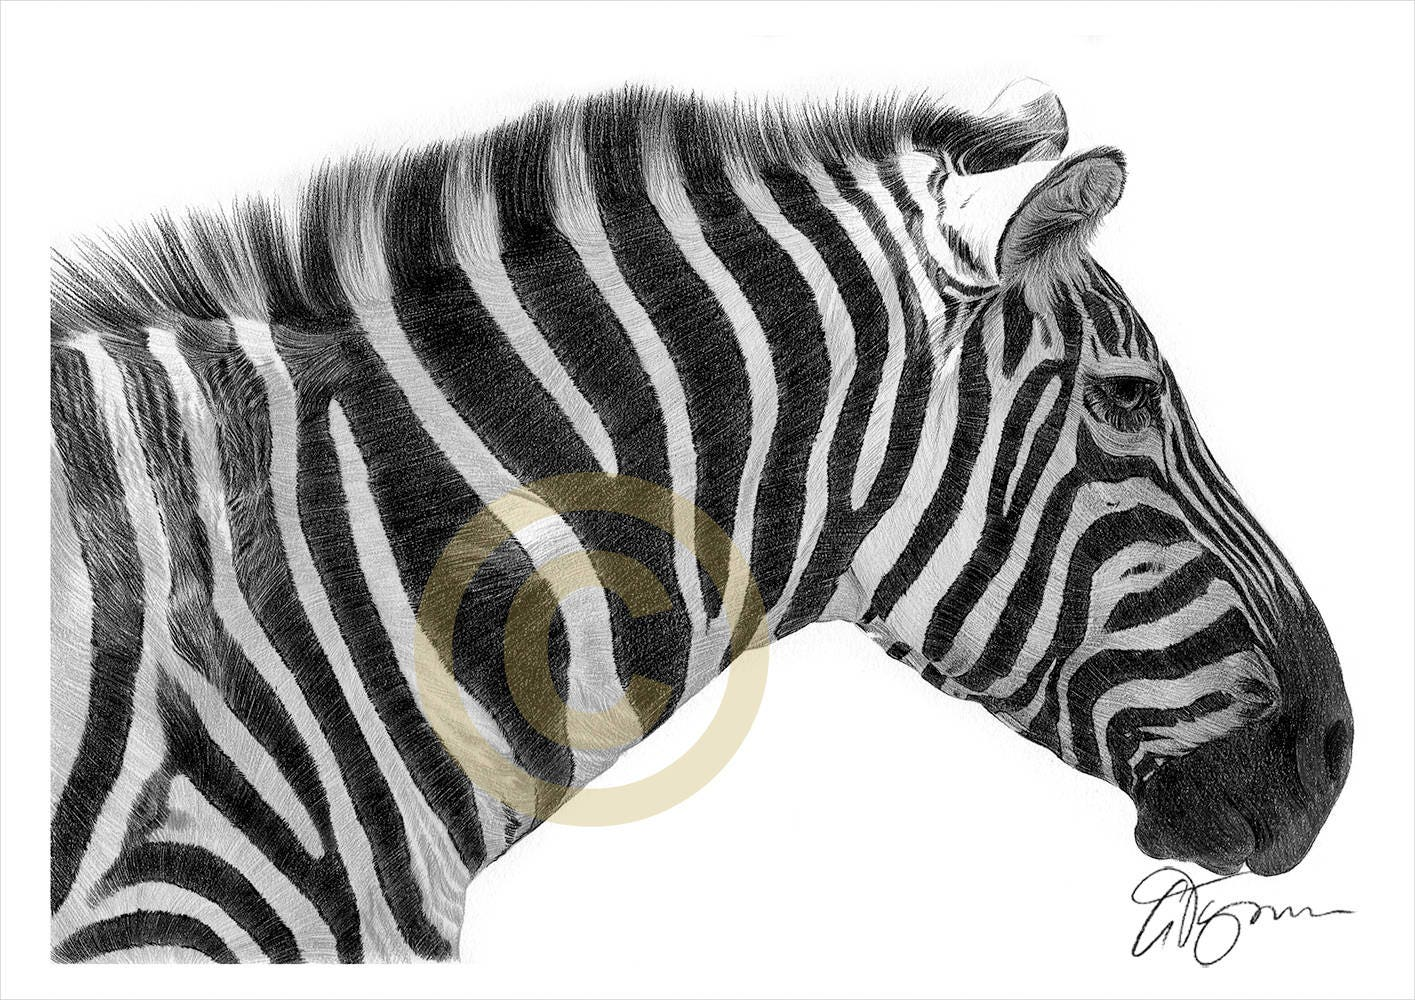 Zebra pencil drawing print african art artwork signed by artist gary tymon ltd ed 50 prints only 2 sizes wildlife animal portrait